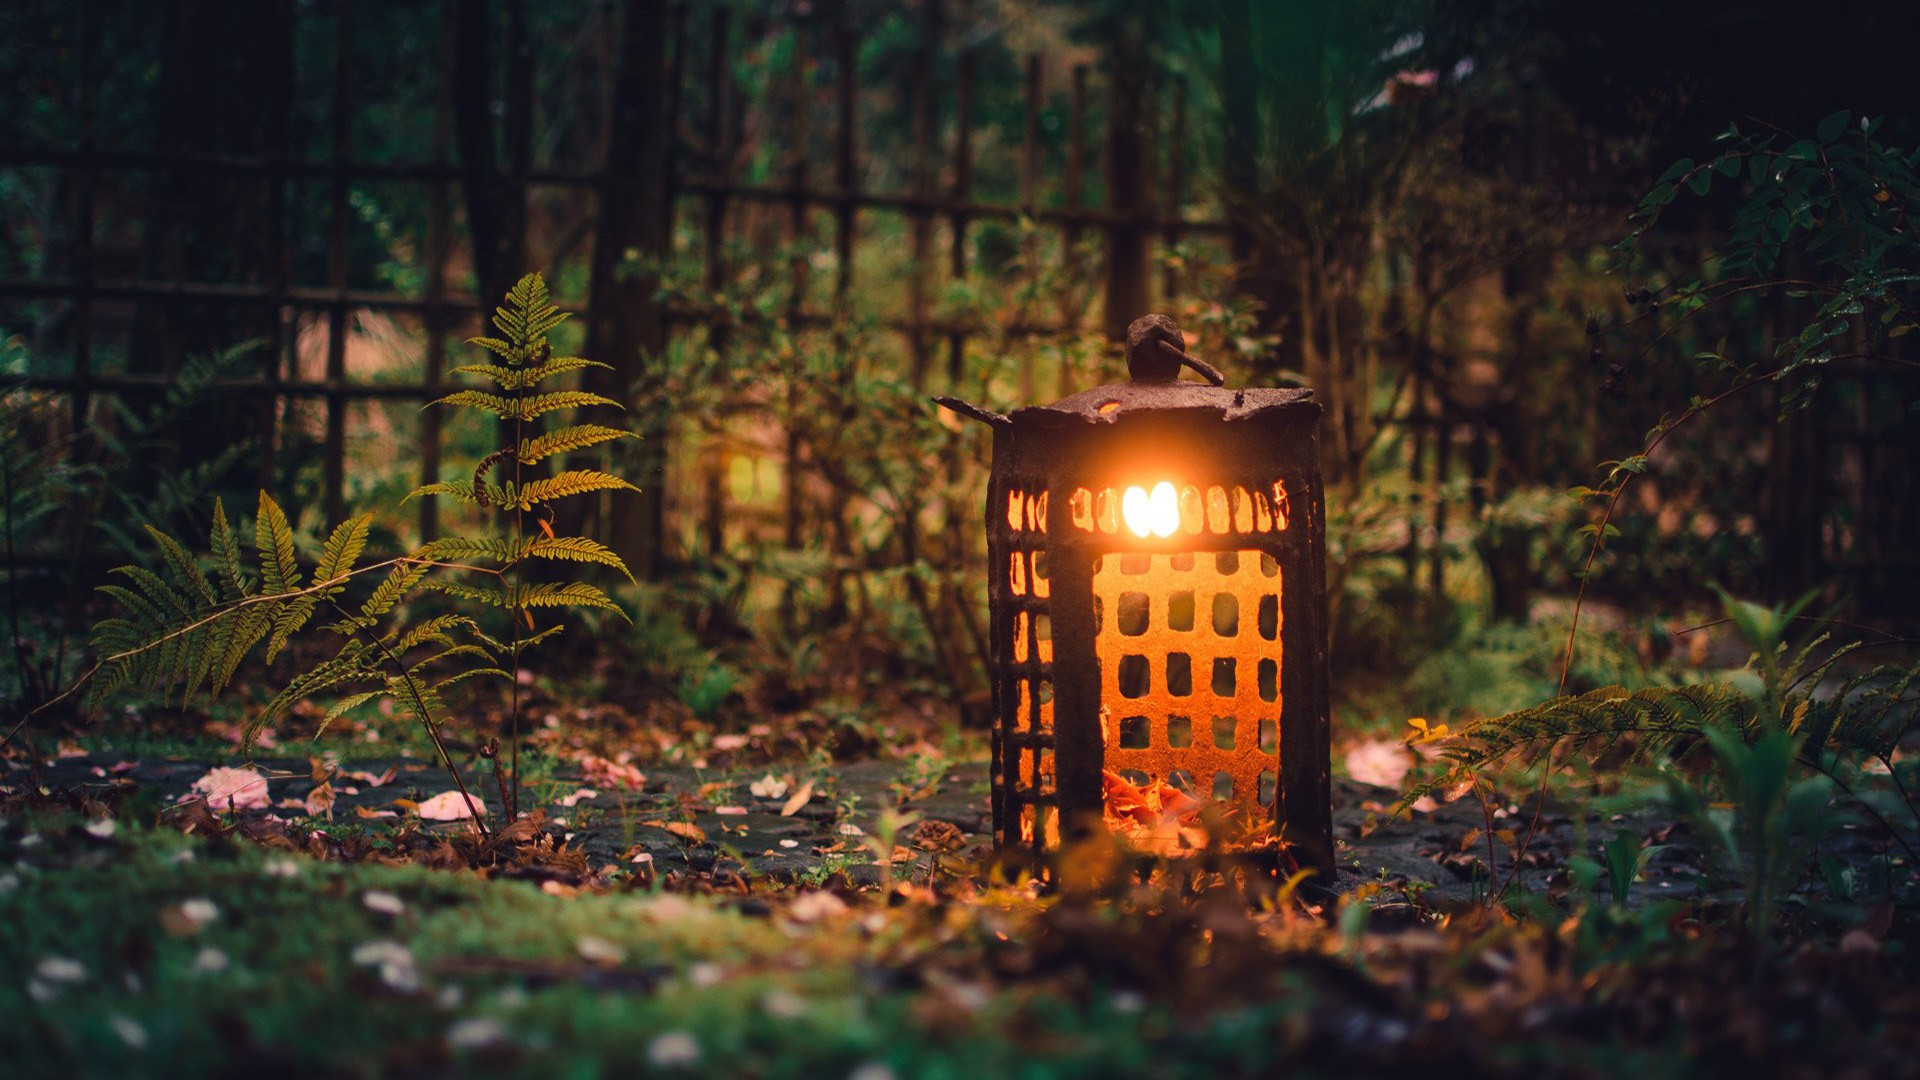 Free Wallpaper Fall Leaves 1600x900 Nature Natural Light Lantern Outdoors Leaves